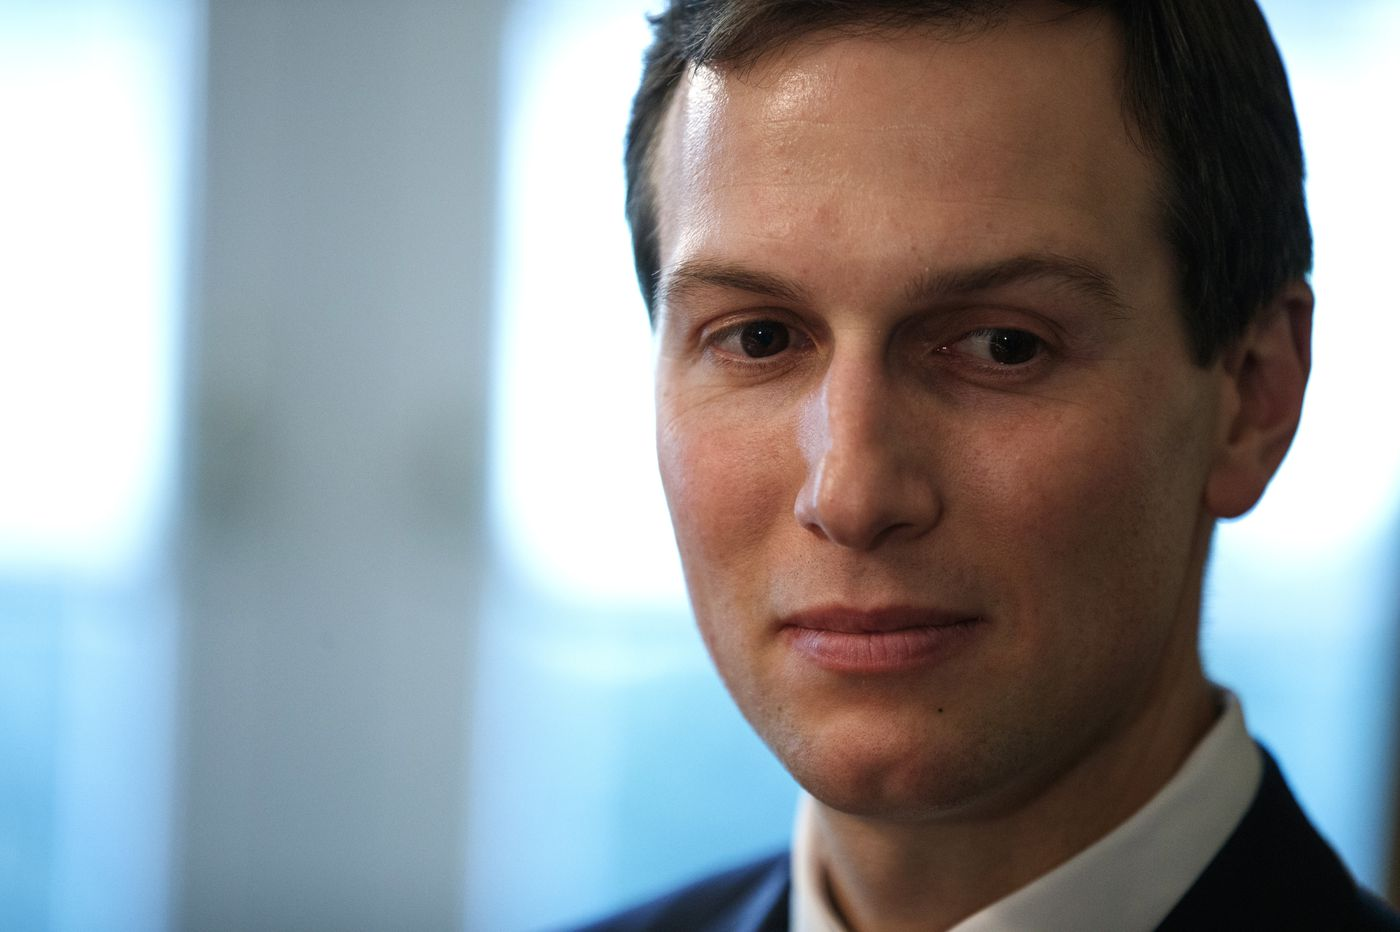 Report Digs Into How Kushner Got Top Secret Clearance